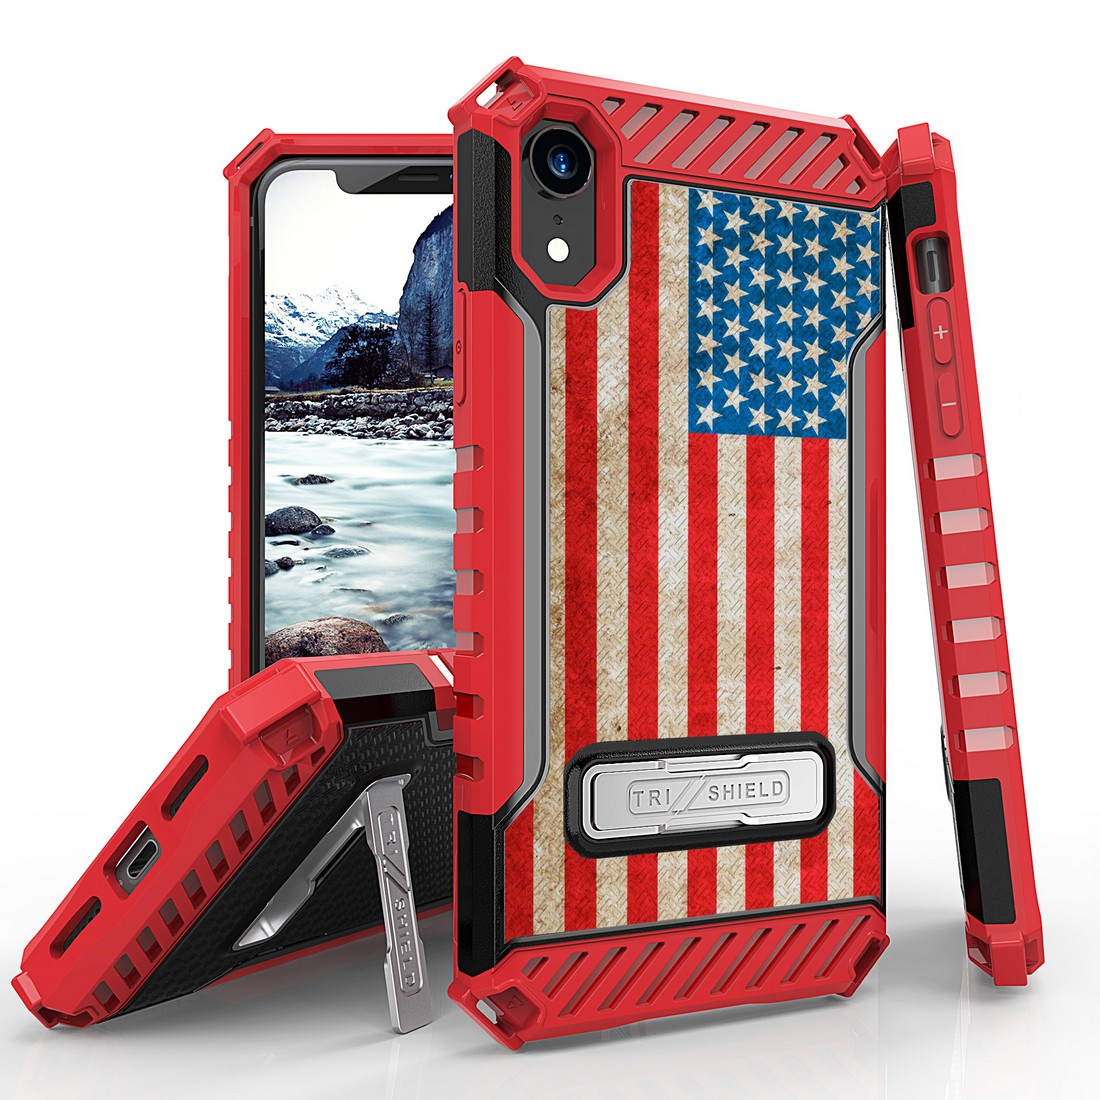 Beyond Cell Case for iPhone XR - Tri Shield Military Grade Shock Proof Kickstand Case Cover for Apple iPhone XR - Vintage American Flag